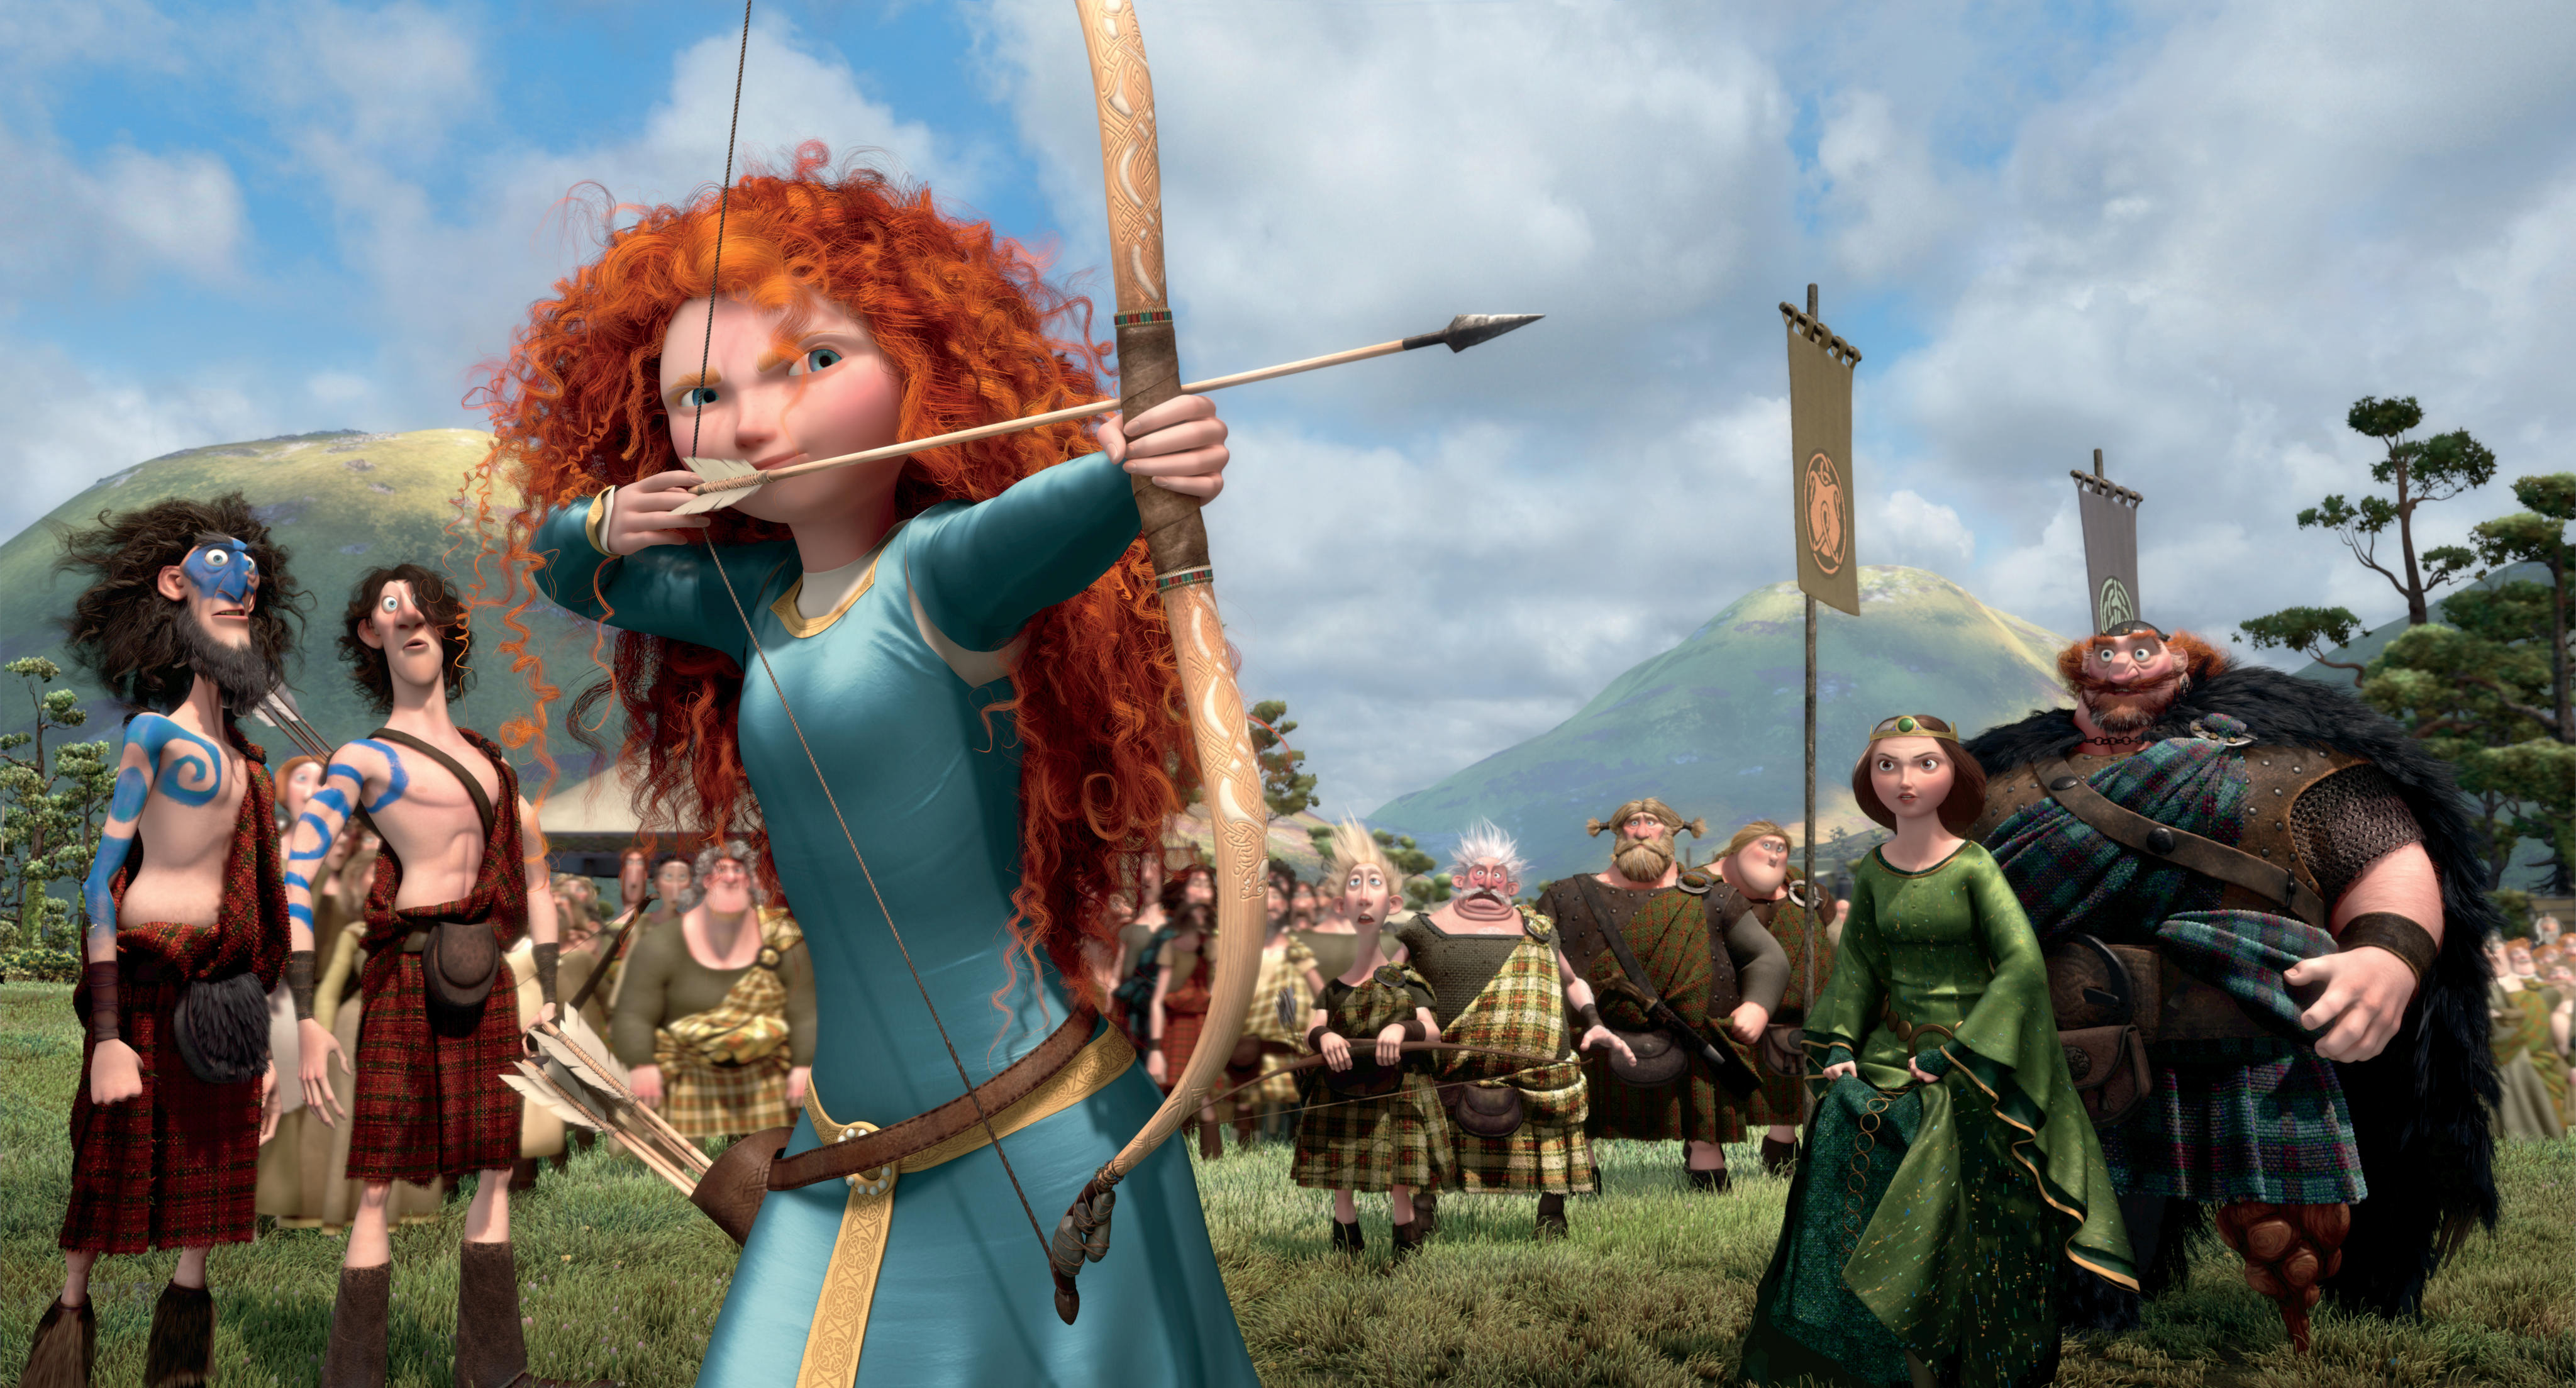 princesa merida valiente arco wallpaper